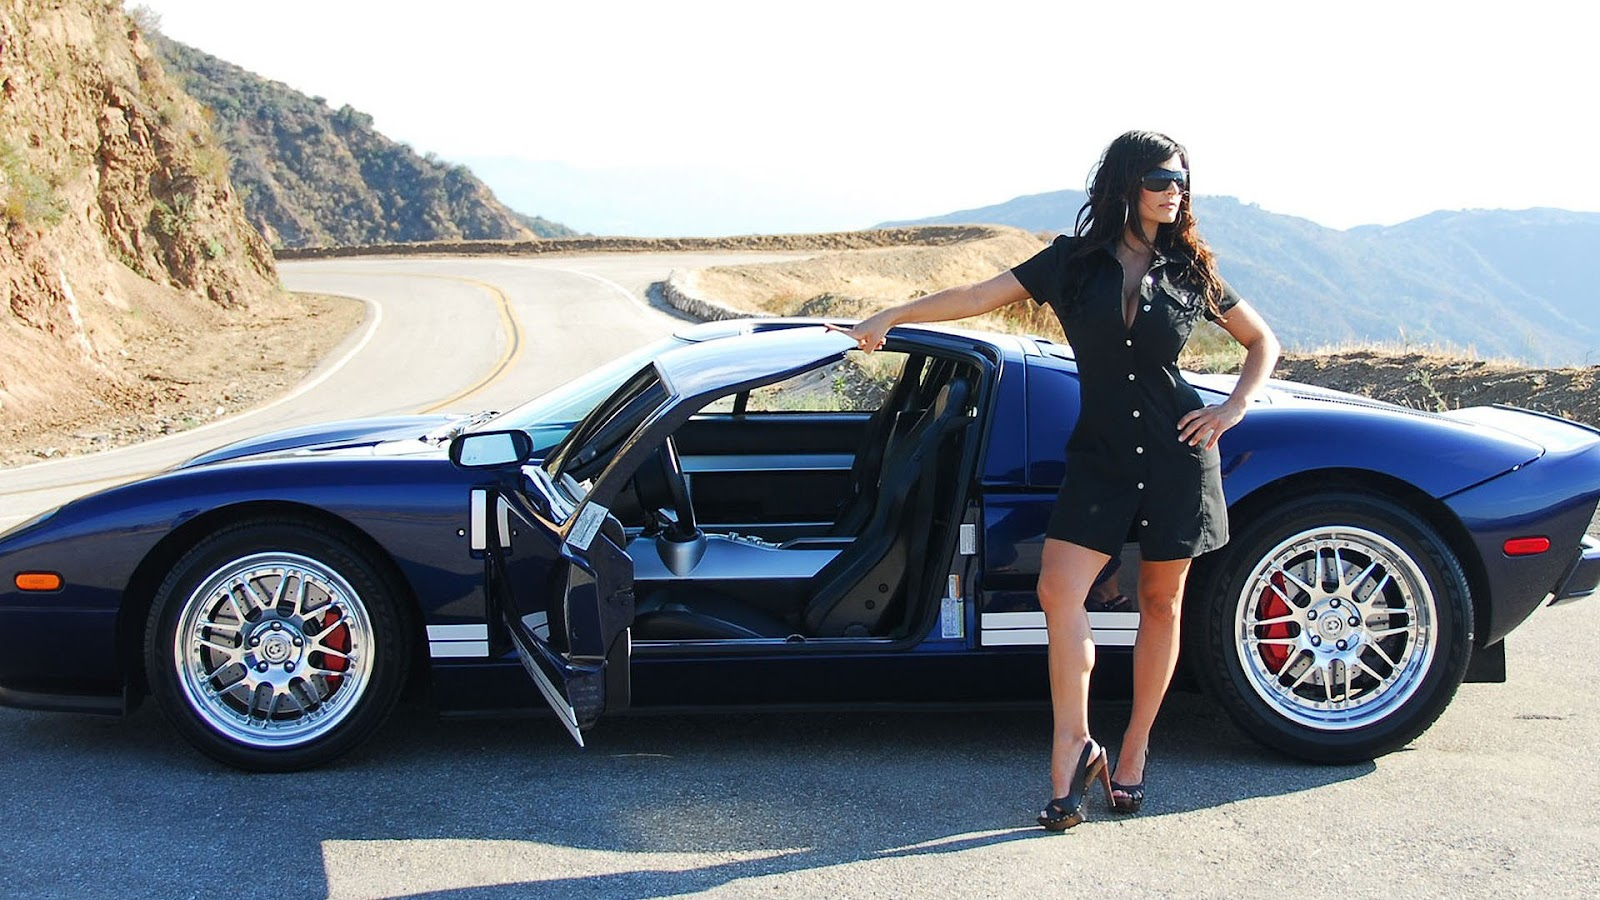 hot girls and cool cars